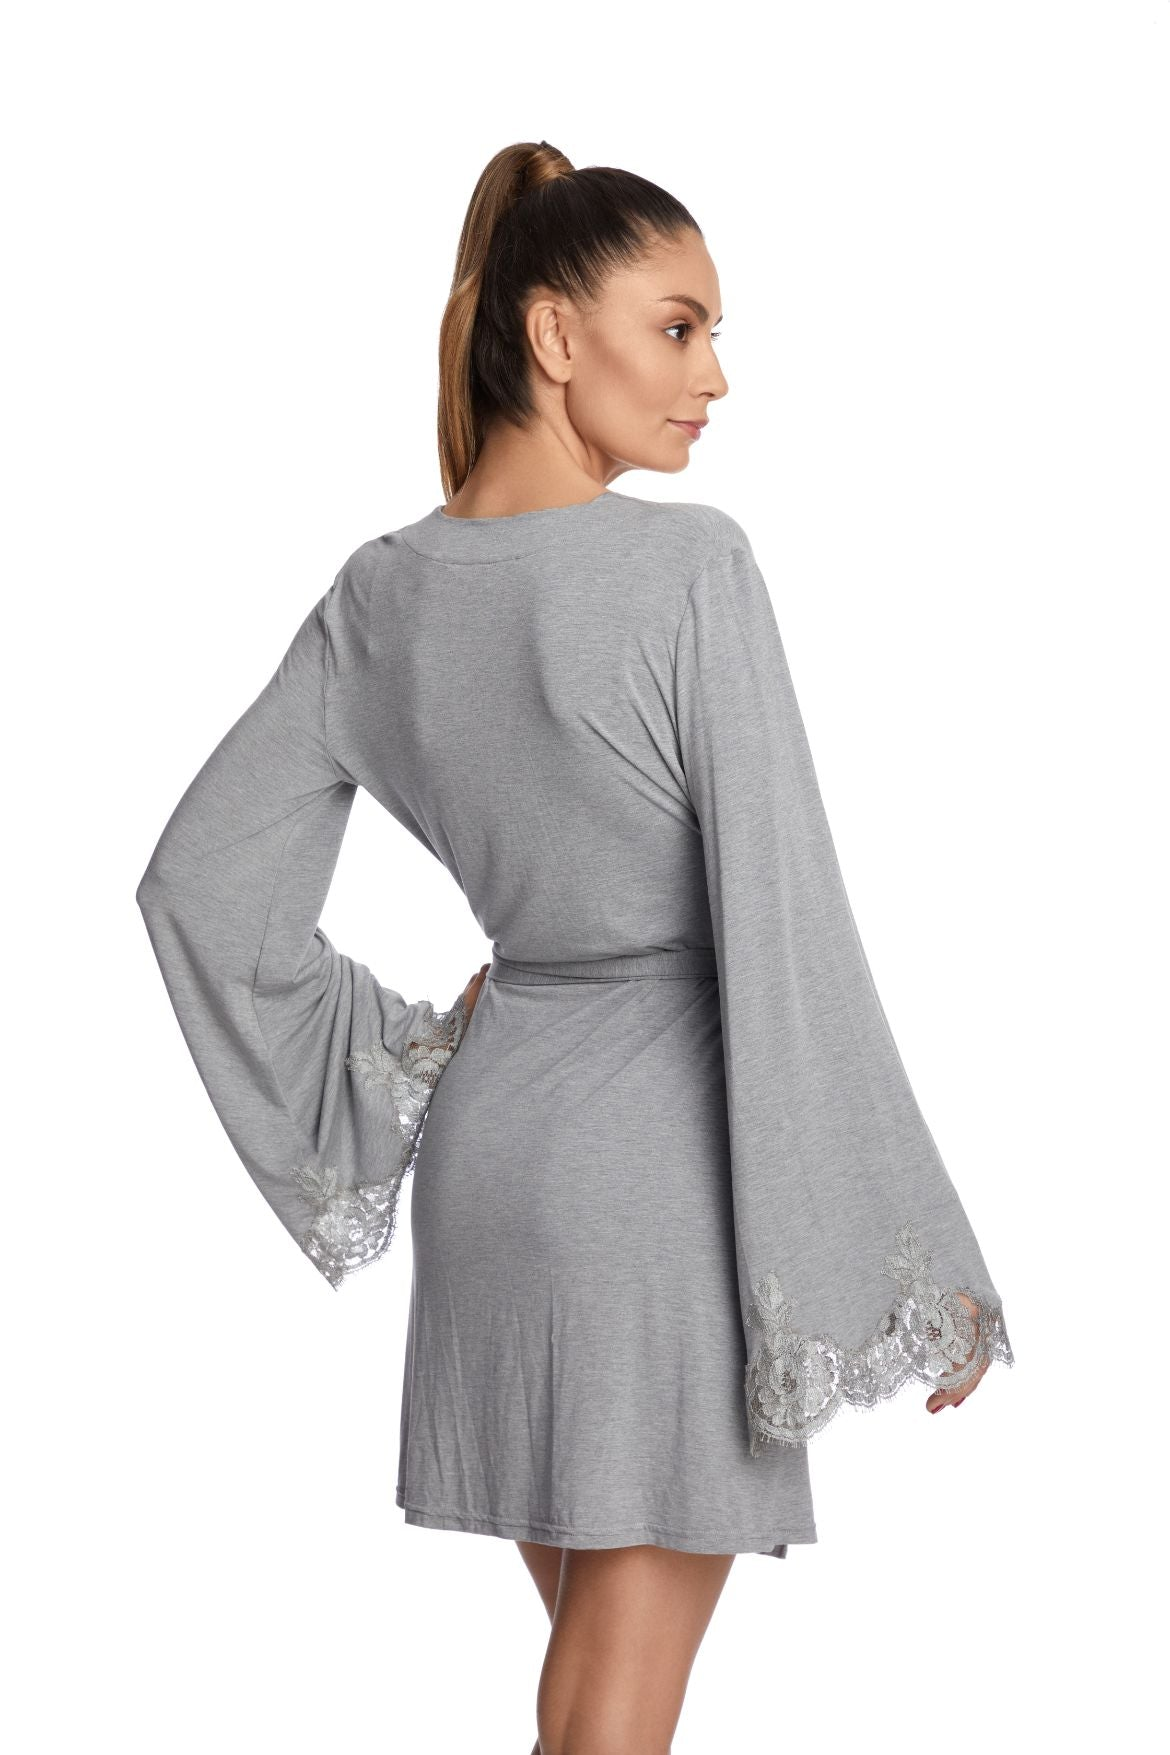 Heavenly Freshness Robe in Glacier Grey